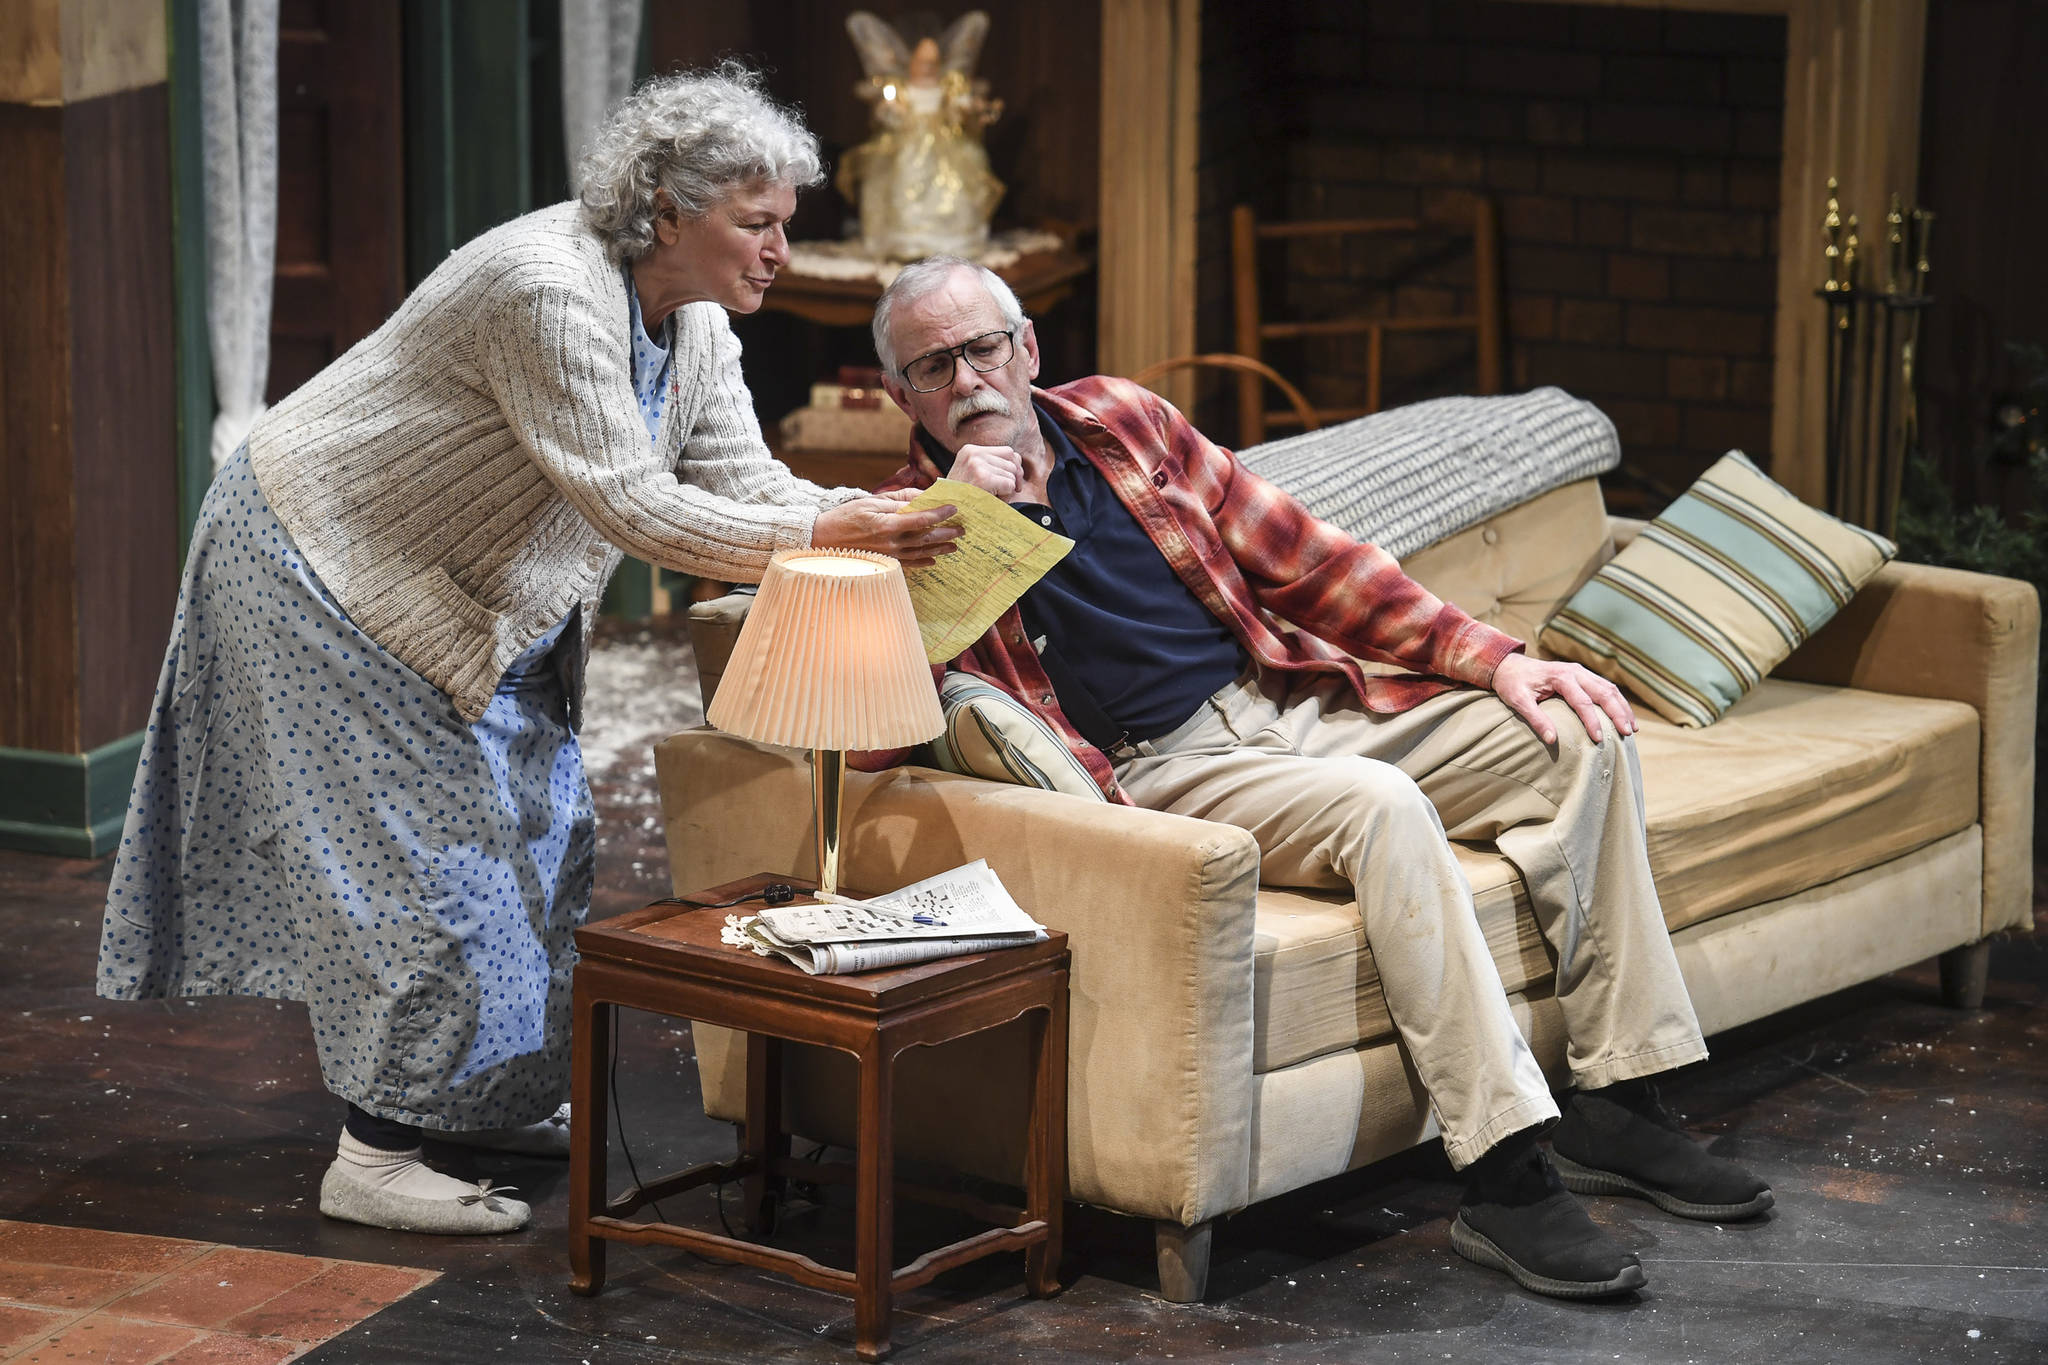 """Clifford, played by Charlie Cardwell, and Minnie, played by Angelina Fiordellisi, rehearse in Perseverance Theatre's production of """"With"""" by playwright Carter Lewis on Tuesday, Nov. 19, 2019. (Michael Penn 